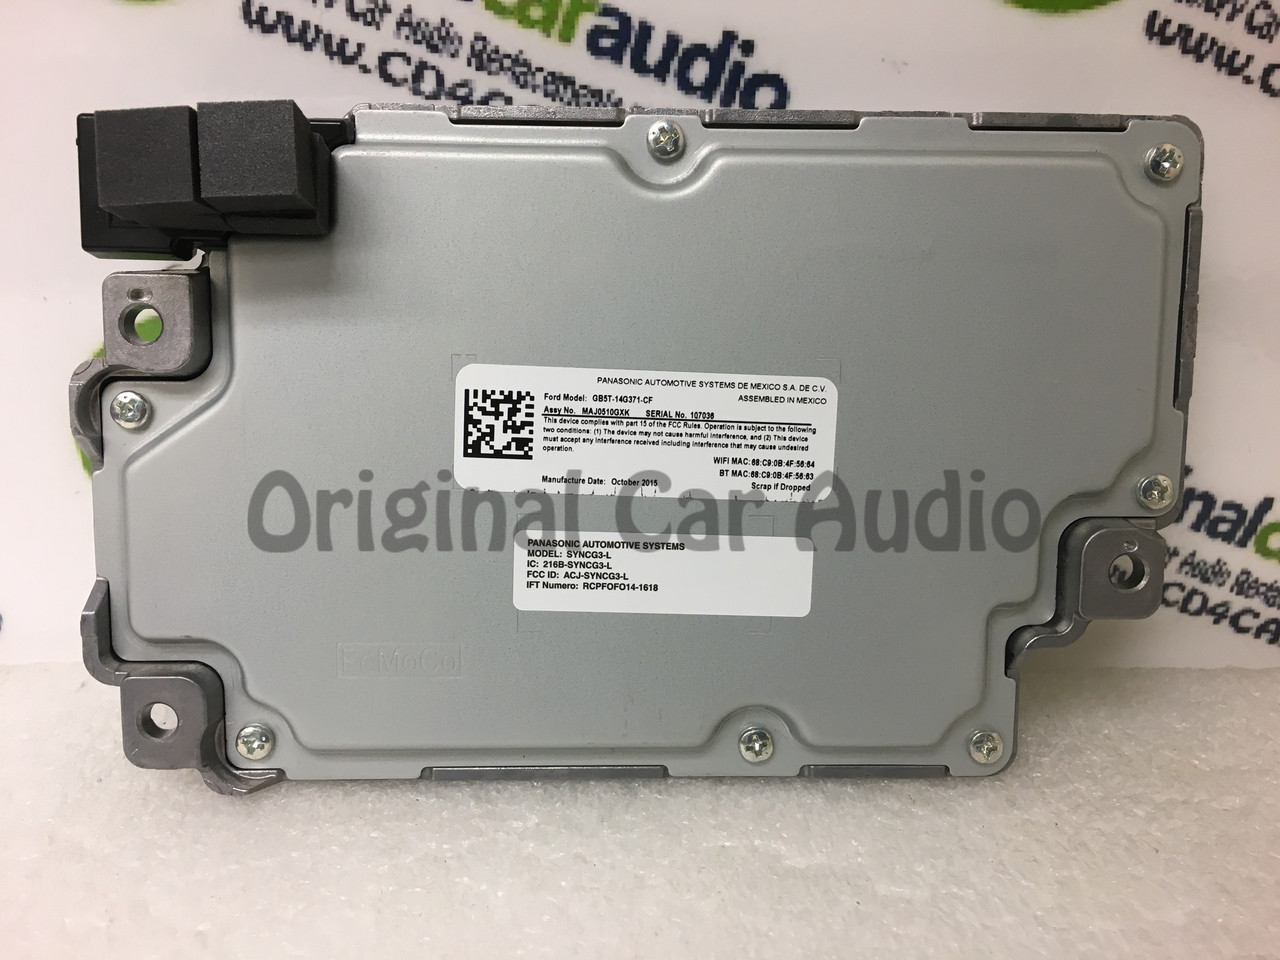 Cl Mustang >> 2015 - 2016 Ford Lincoln Fiesta Mustang OEM Sync Module With GPS Navigation | eBay